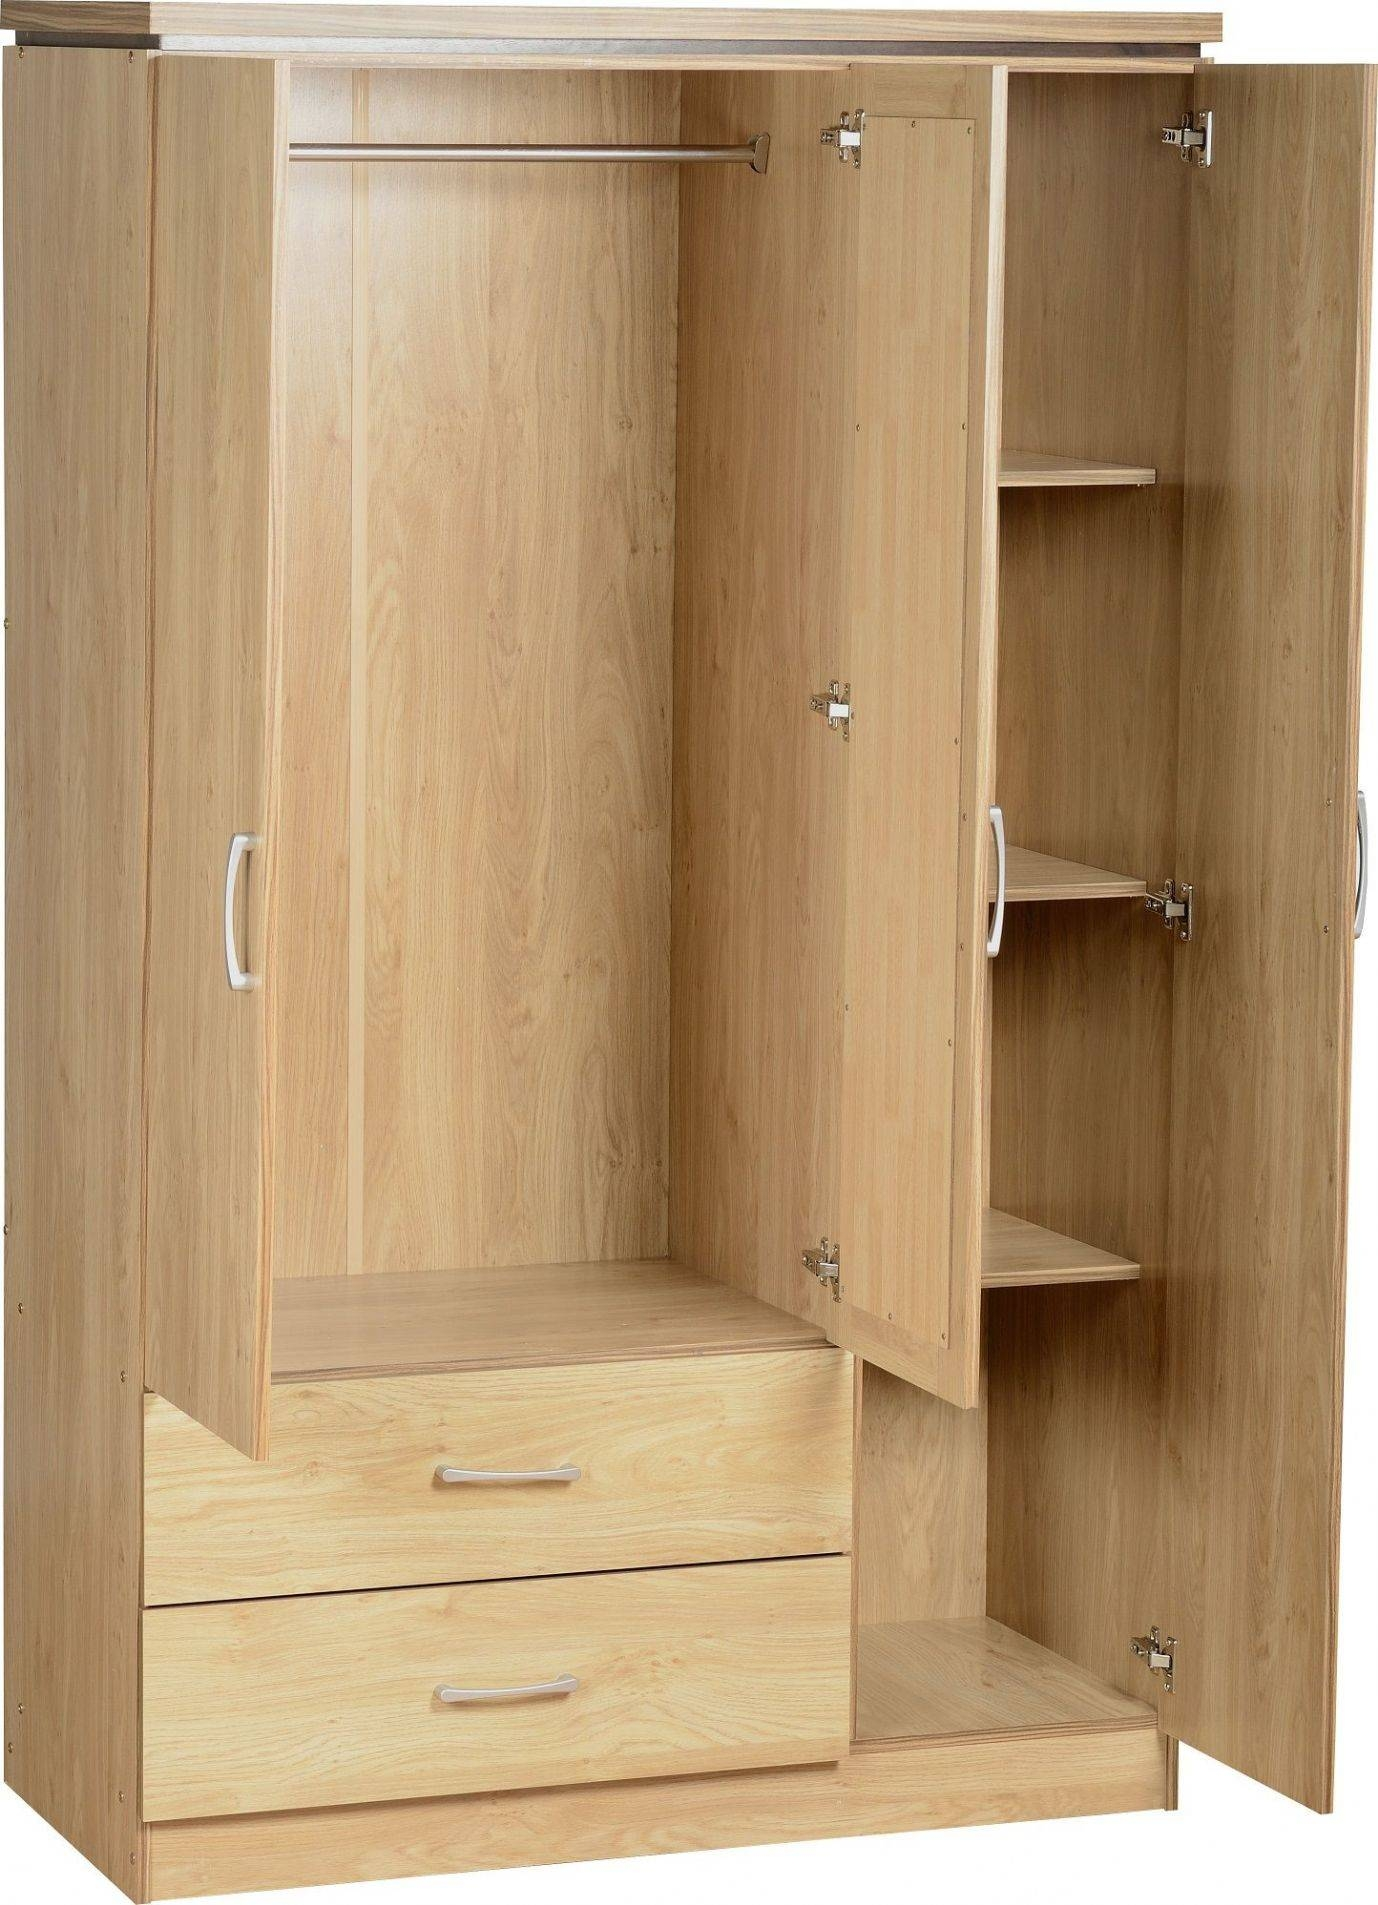 Wardrobes With Shelves, Ca Baumhaus Amelie Oak Childrens Kids throughout Wardrobe With Drawers And Shelves (Image 28 of 30)